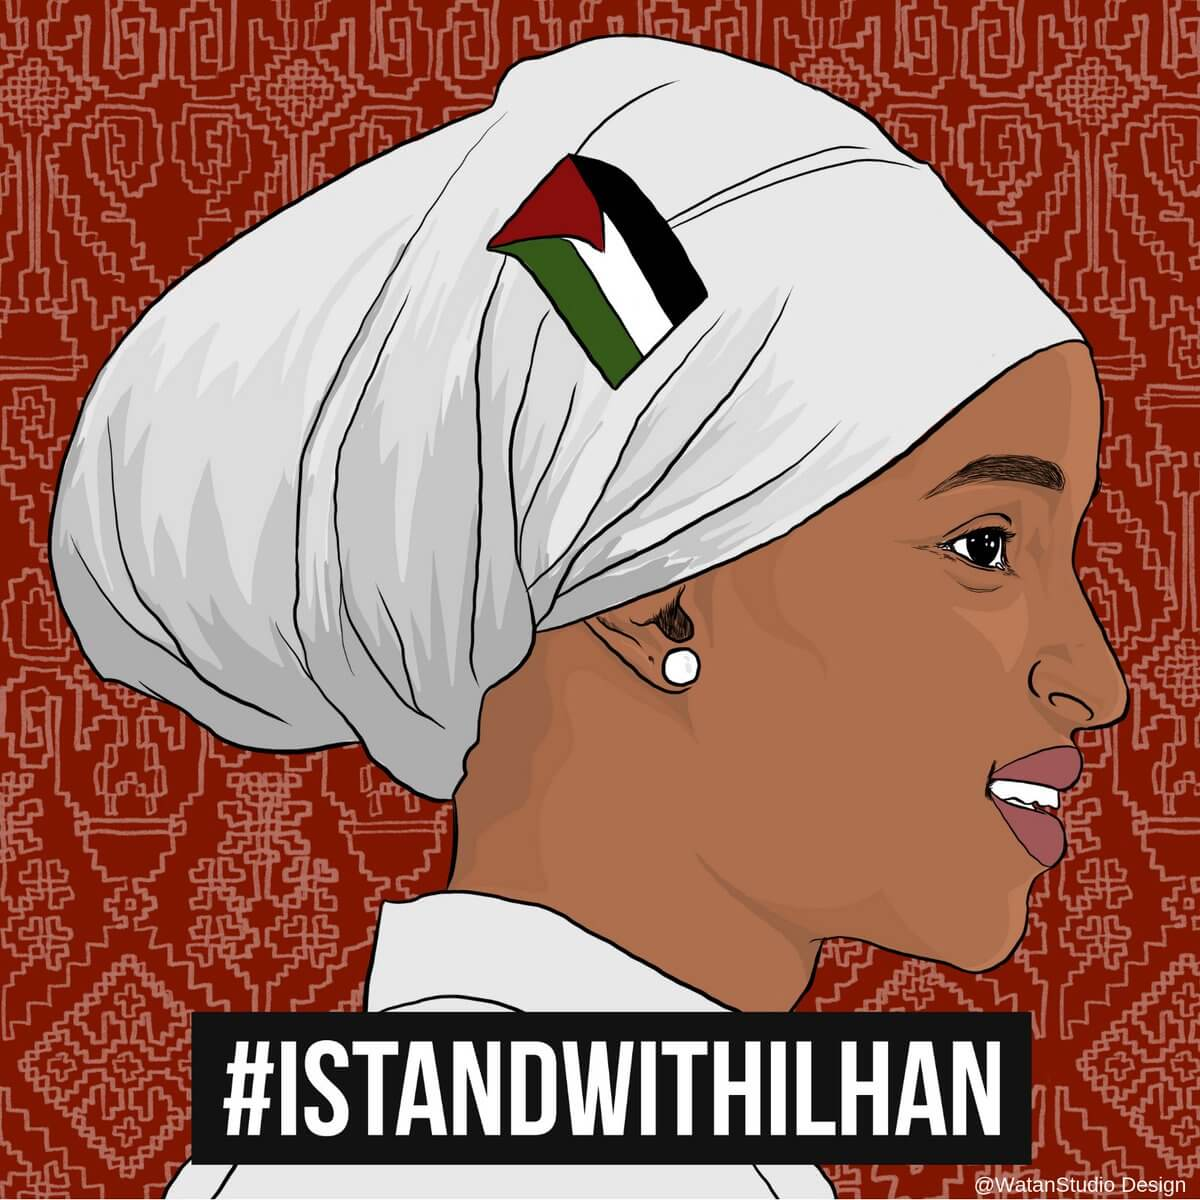 Illustration used to show solidarity with Rep. Ilhan Omar on social media